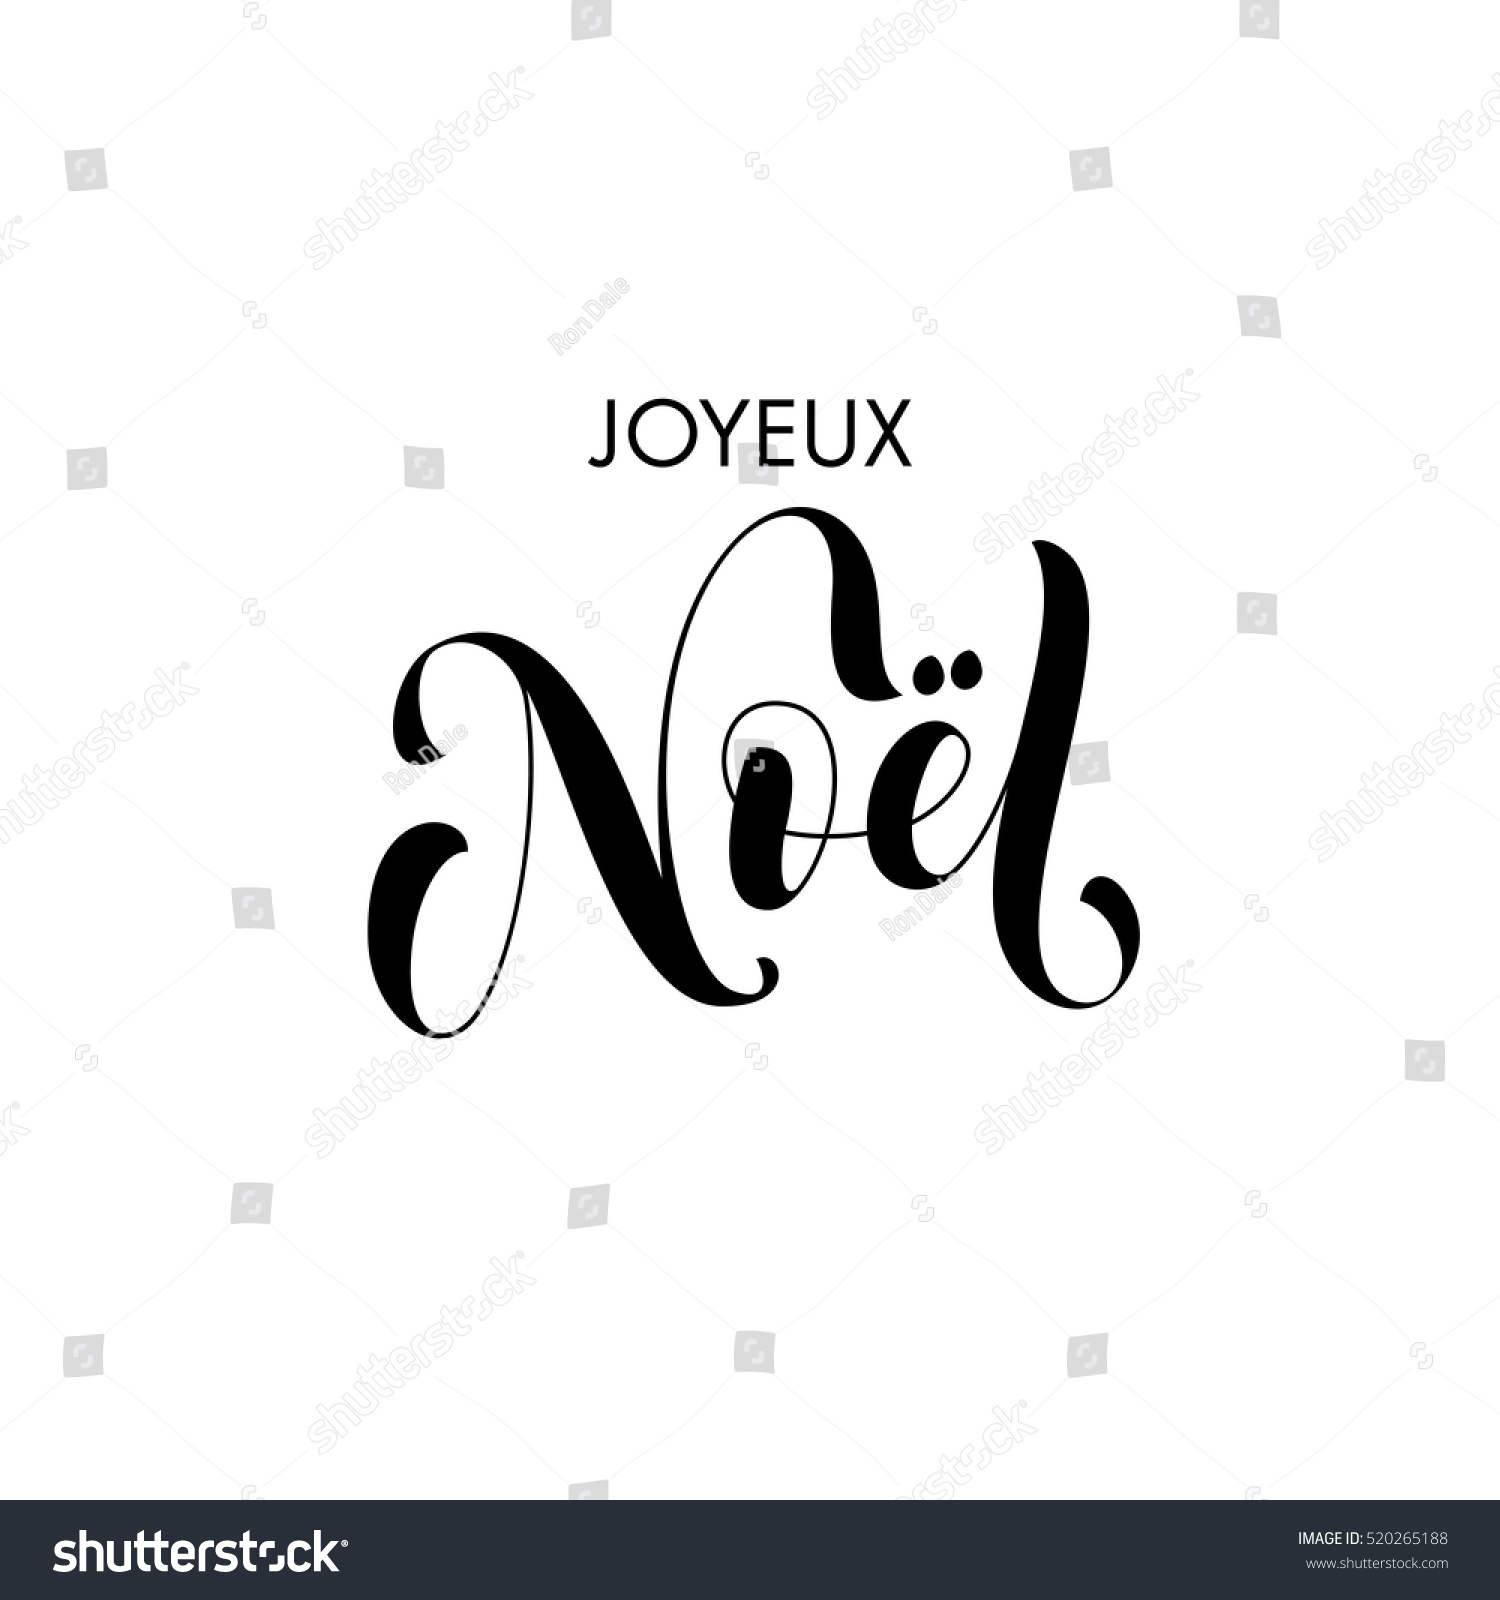 merry christmas in french joyeux noel french merry christmas calligraphy text greeting white vector hand